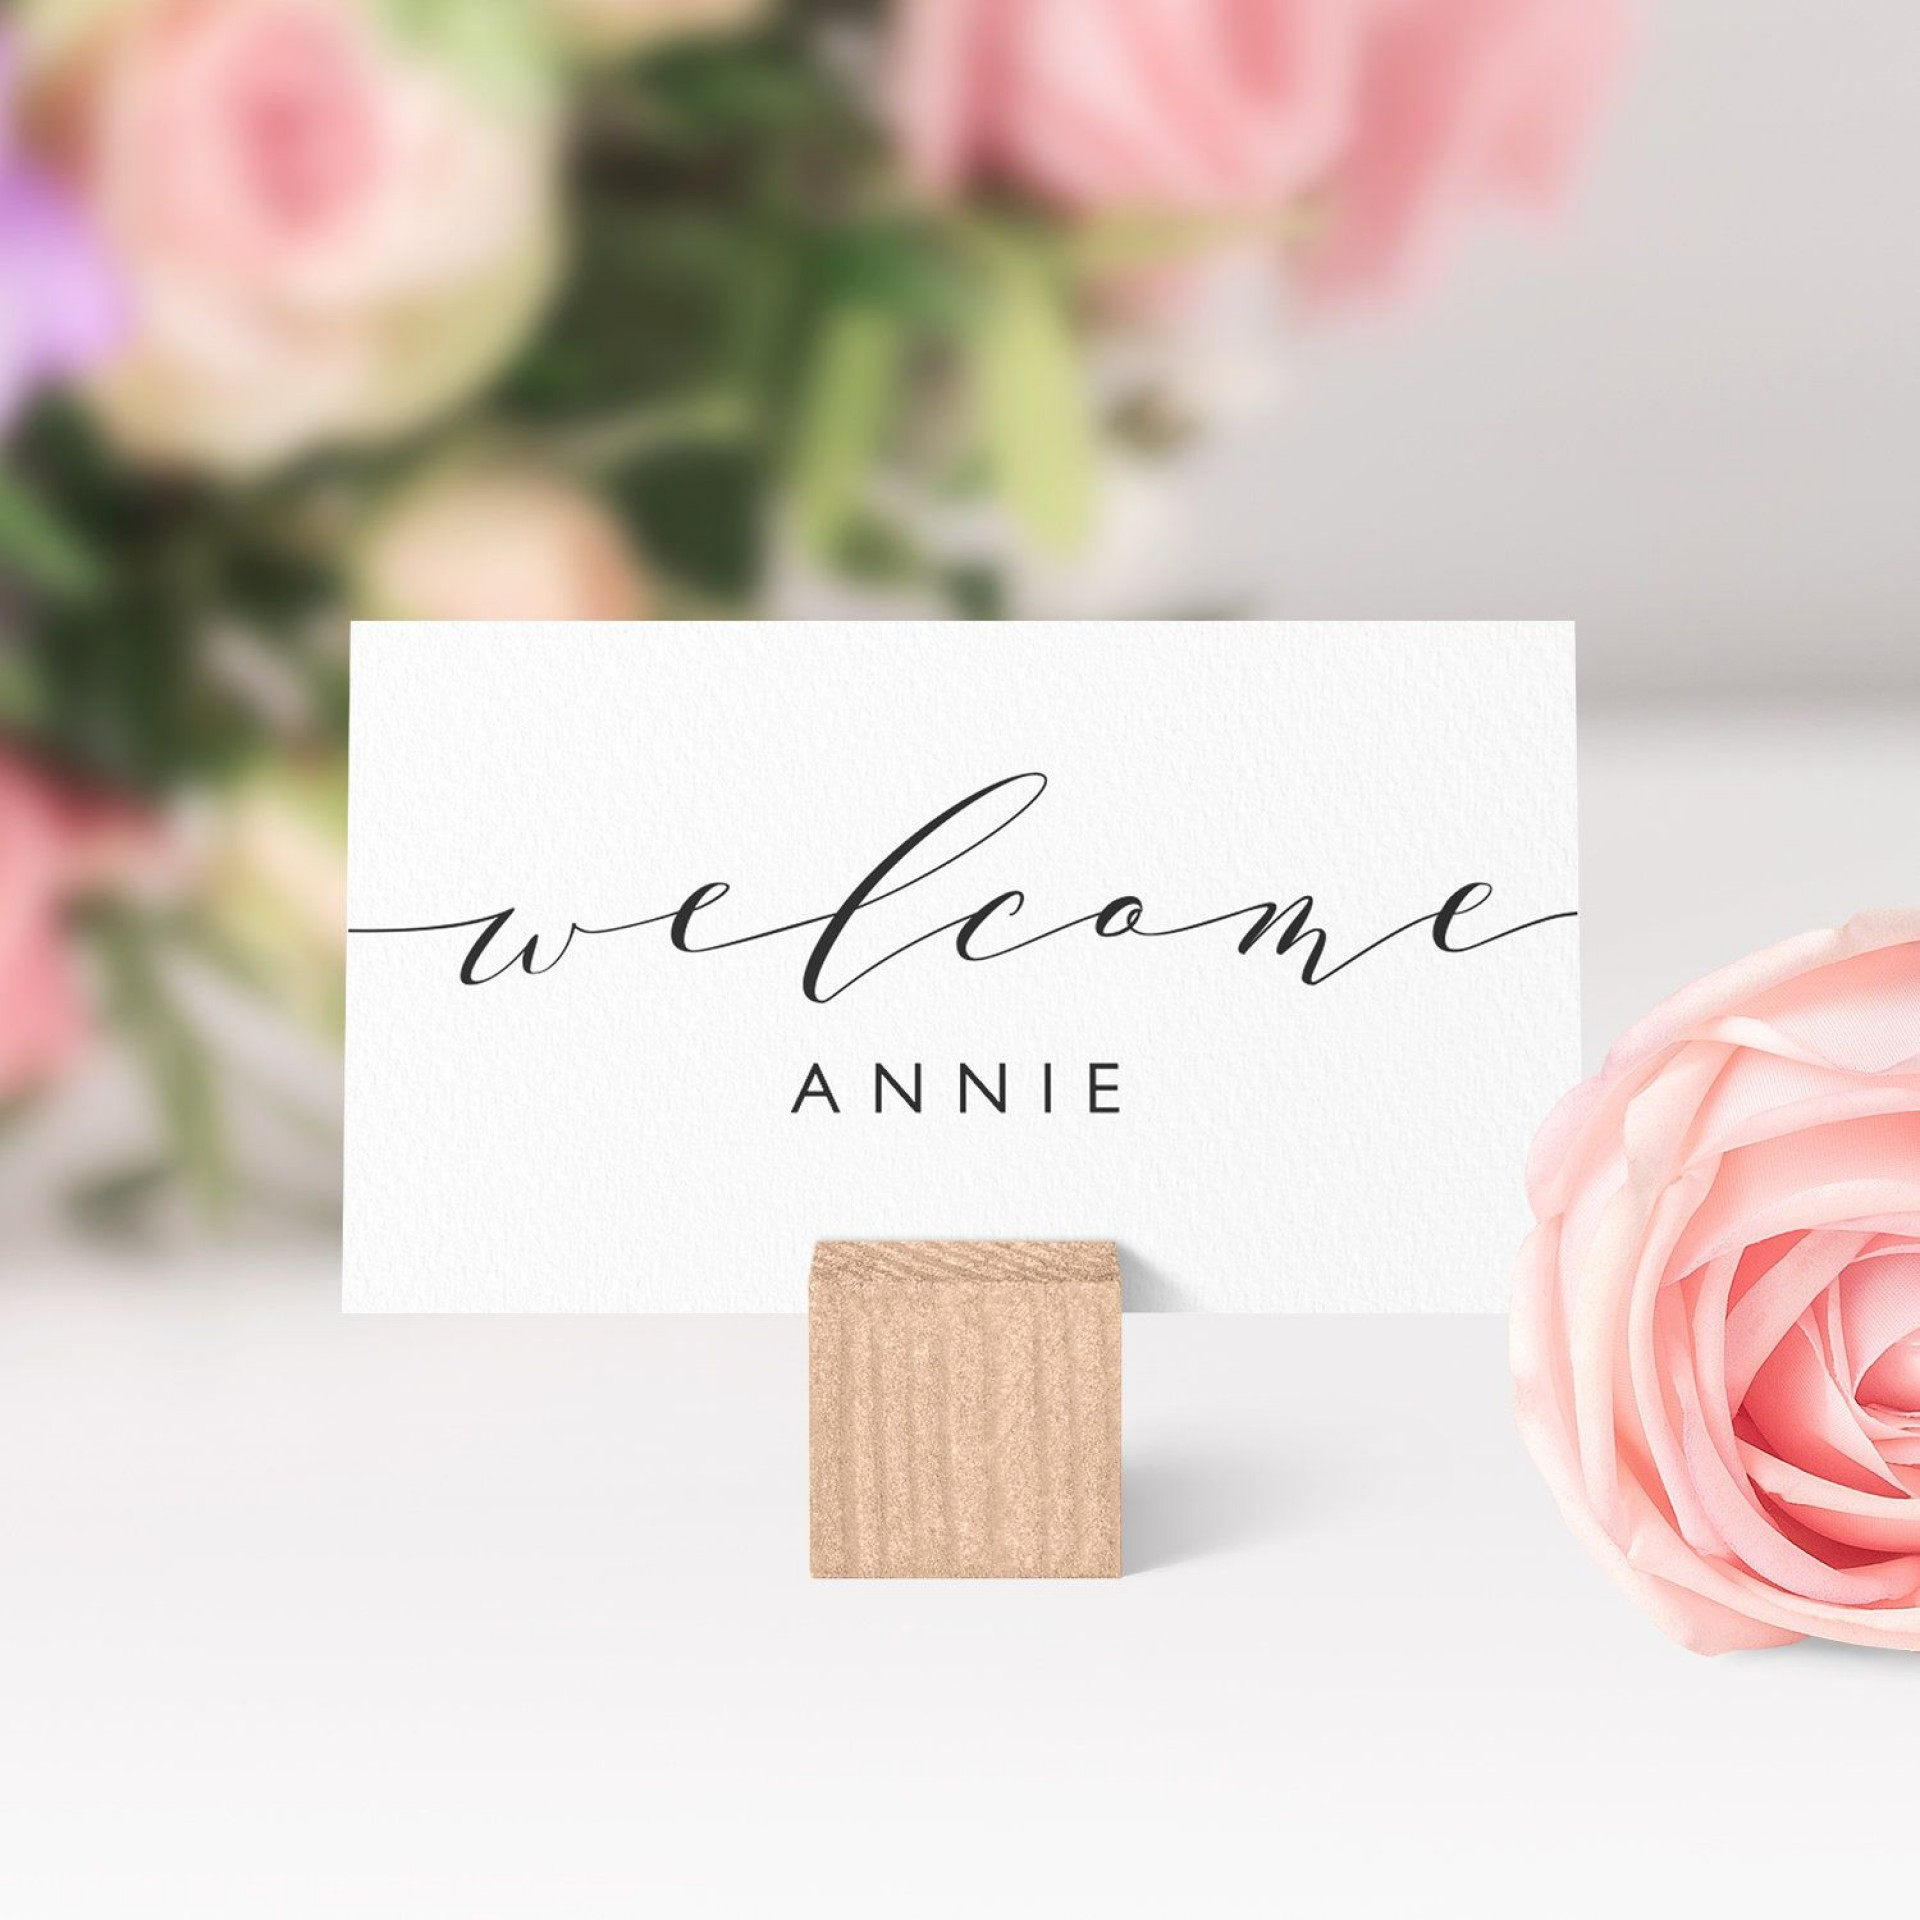 007 Unusual Name Place Card Template For Wedding Example  Free Word1920